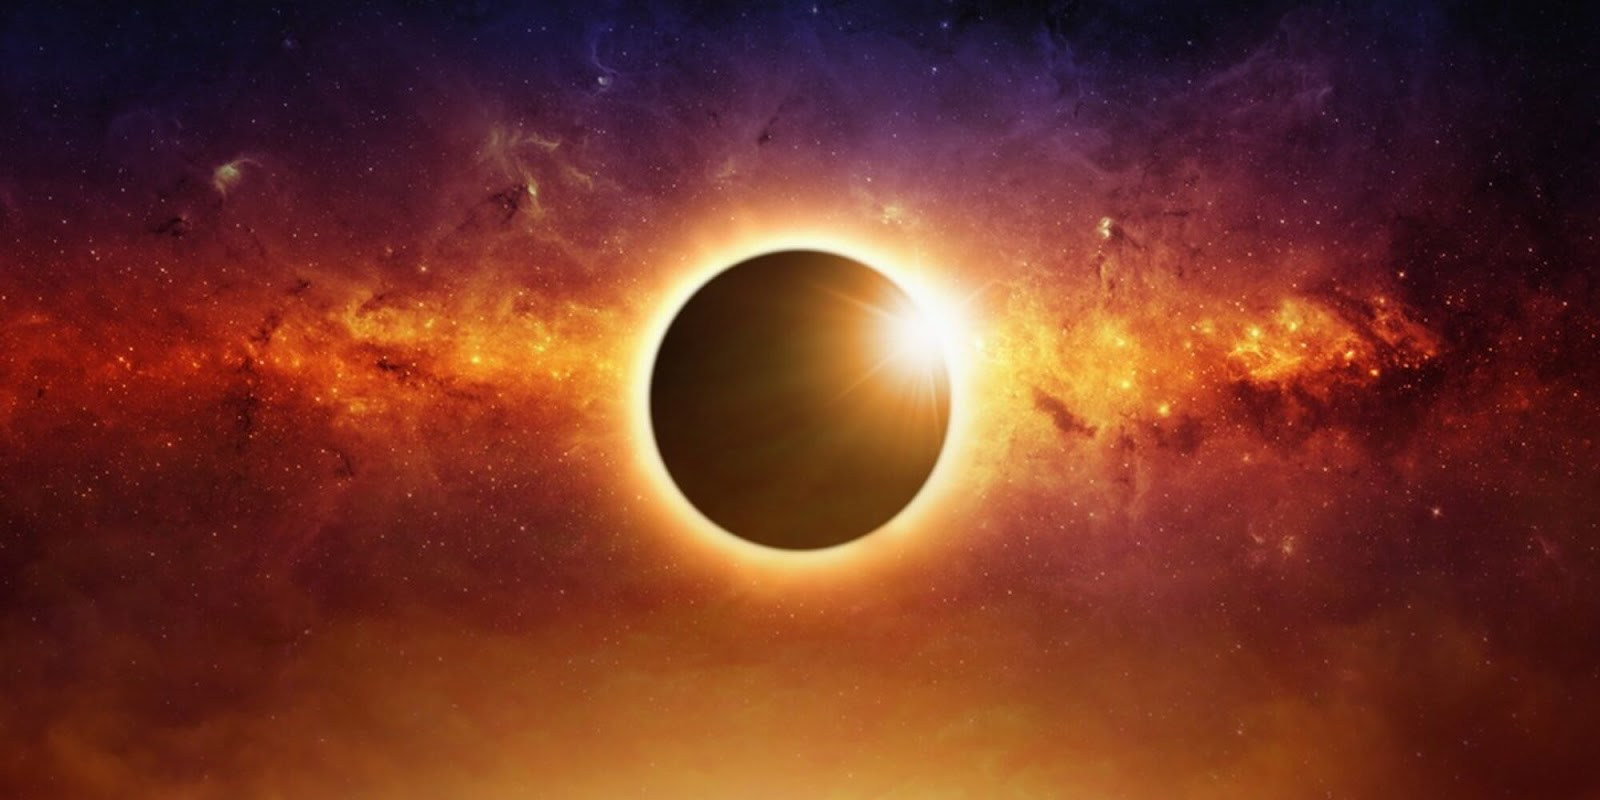 The Next Big Total Solar Eclipse In North America Is In Less Than 2 Months From Now!